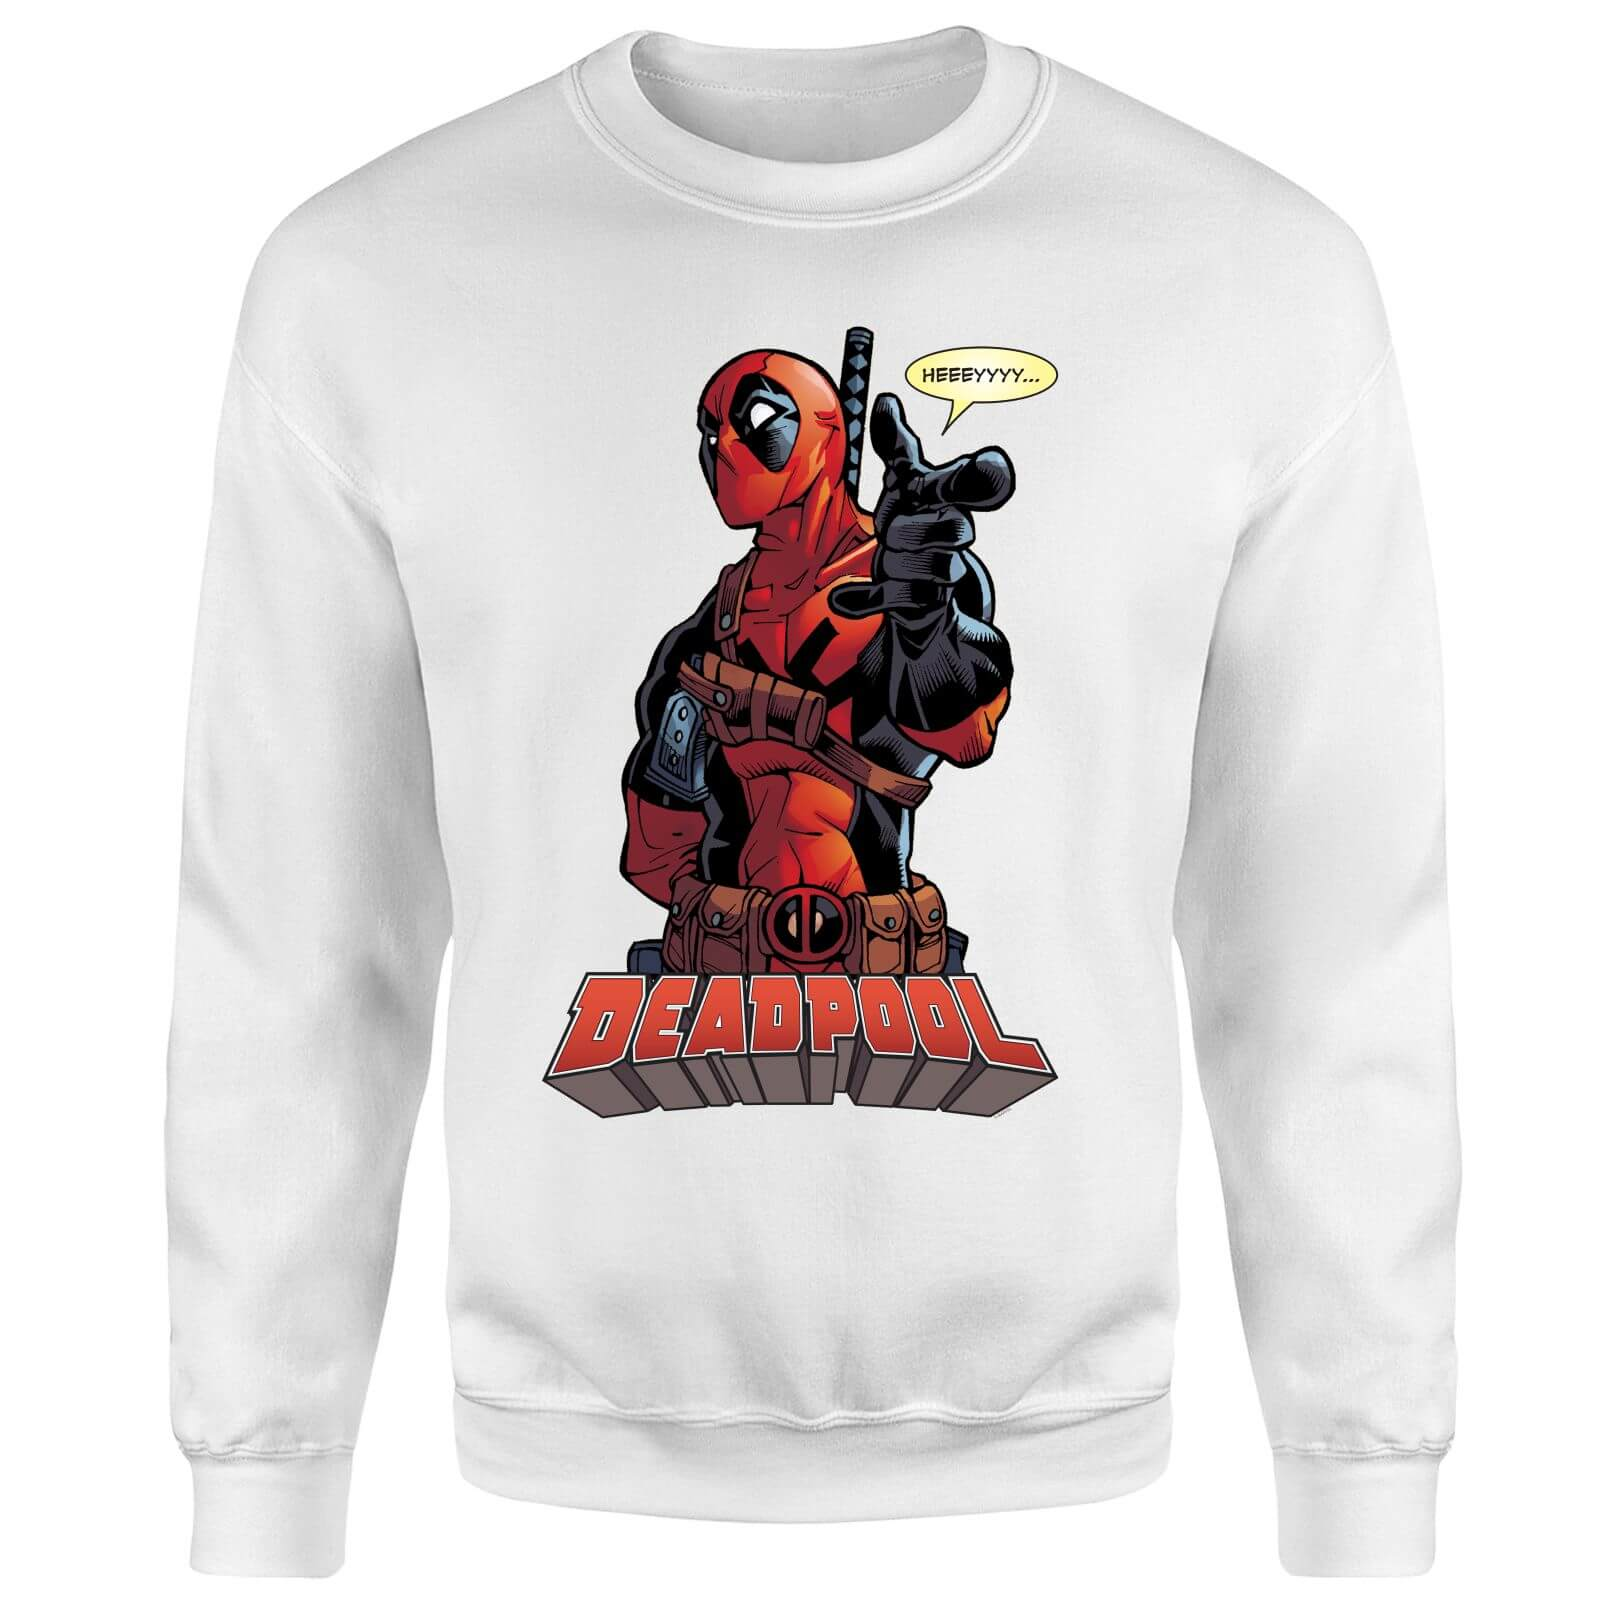 Marvel Deadpool Hey You Sweatshirt - White